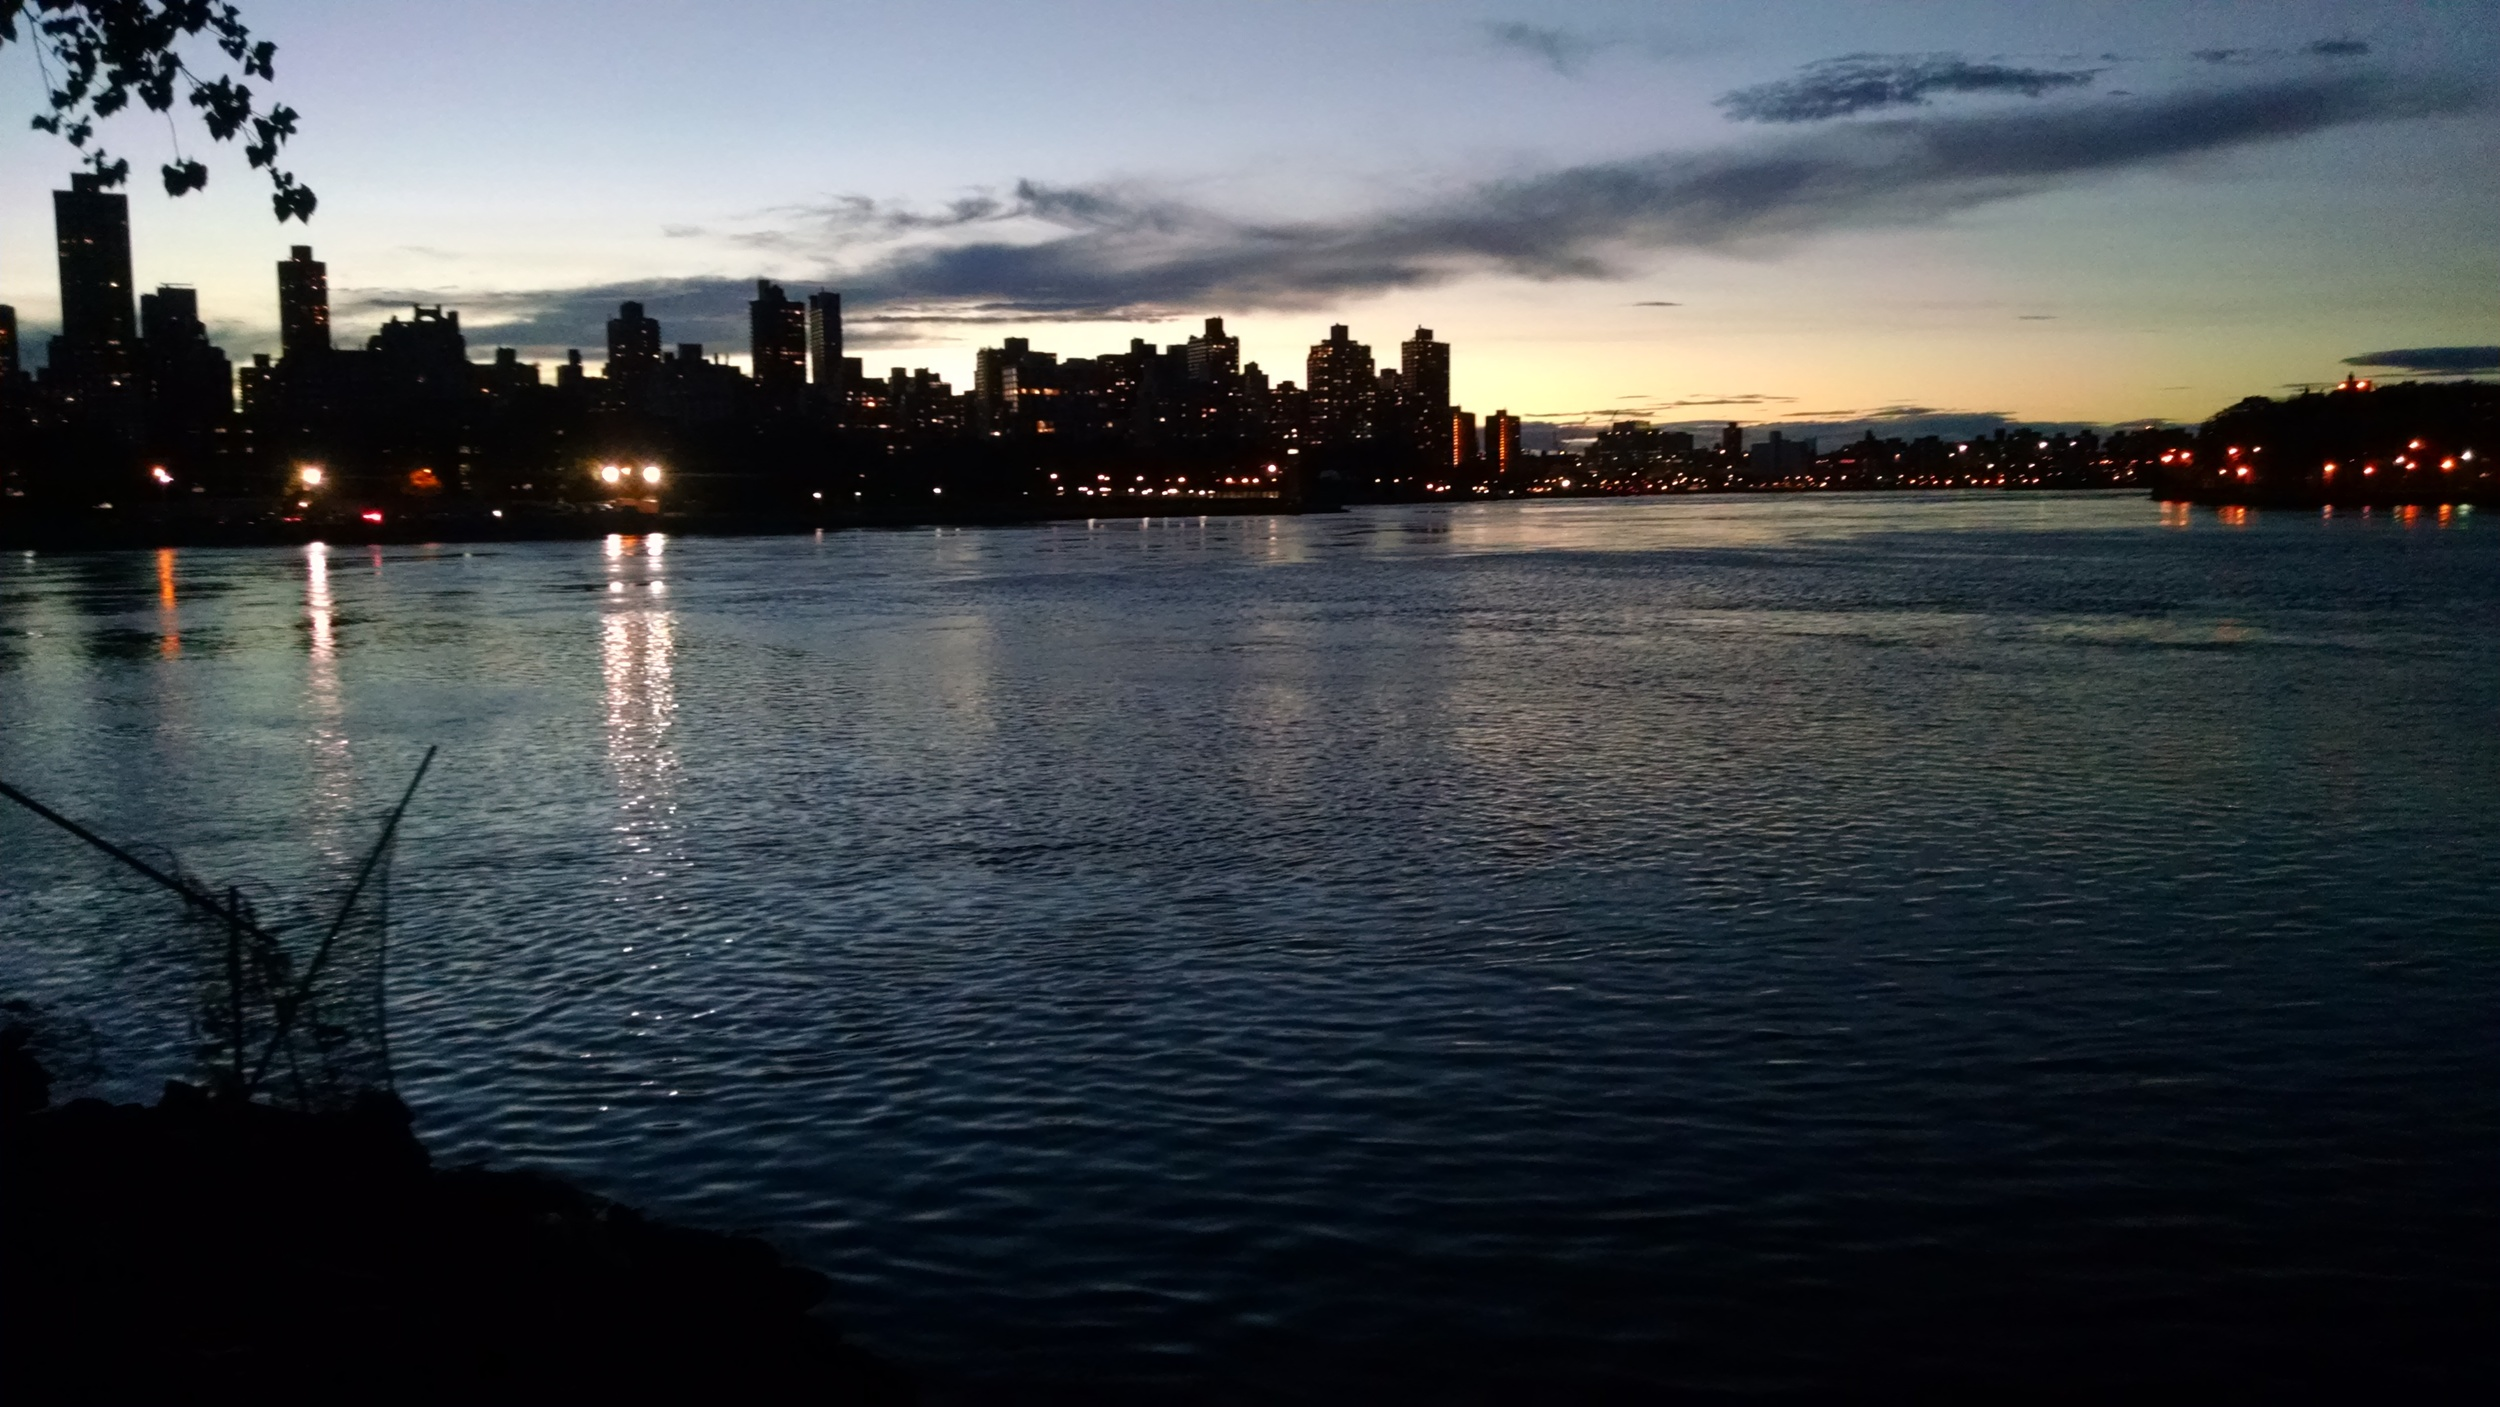 Epic Sunsets on the East River over Roosevelt Island